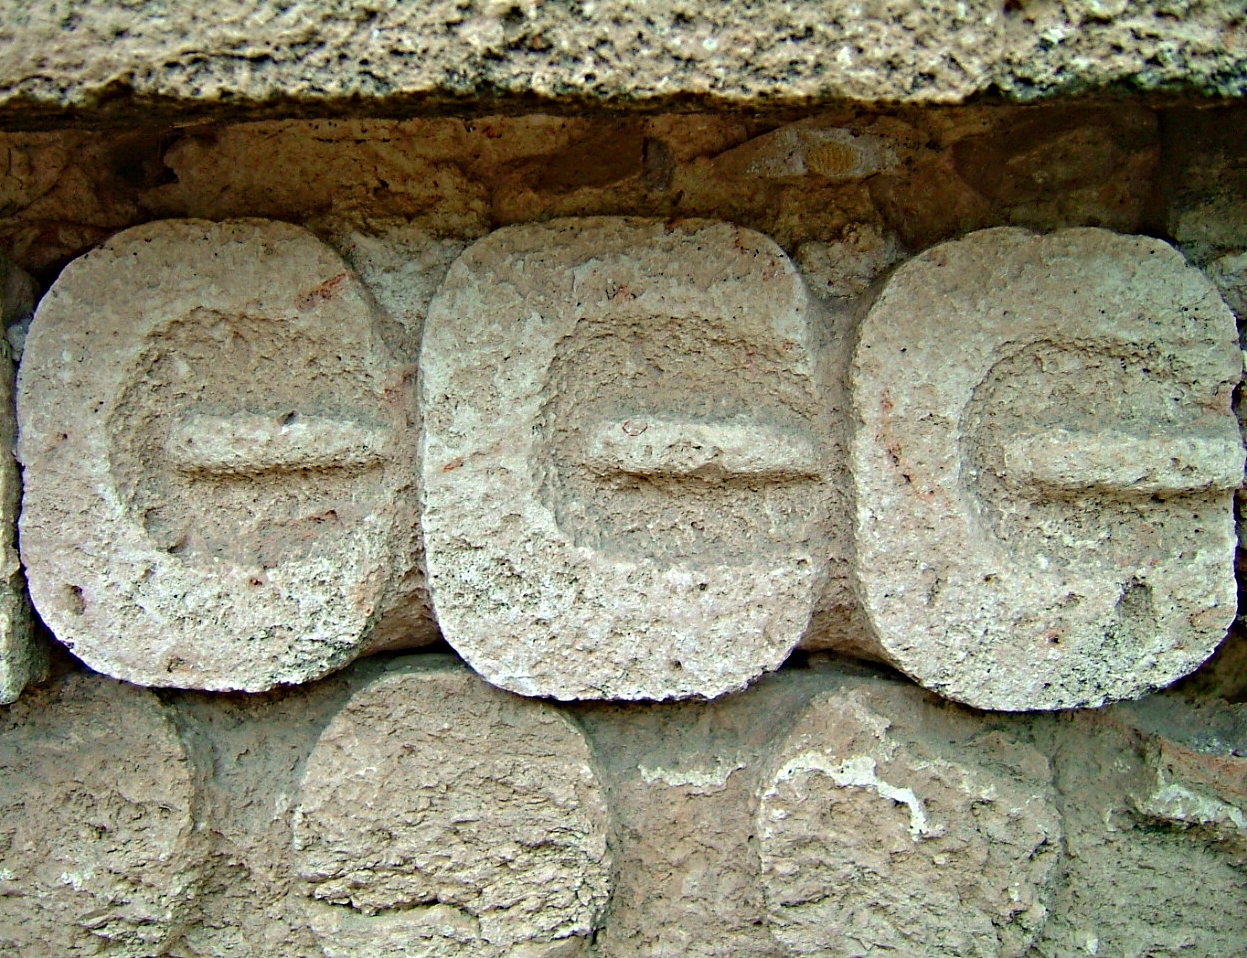 Corn seeds carved in stone, Uxmal